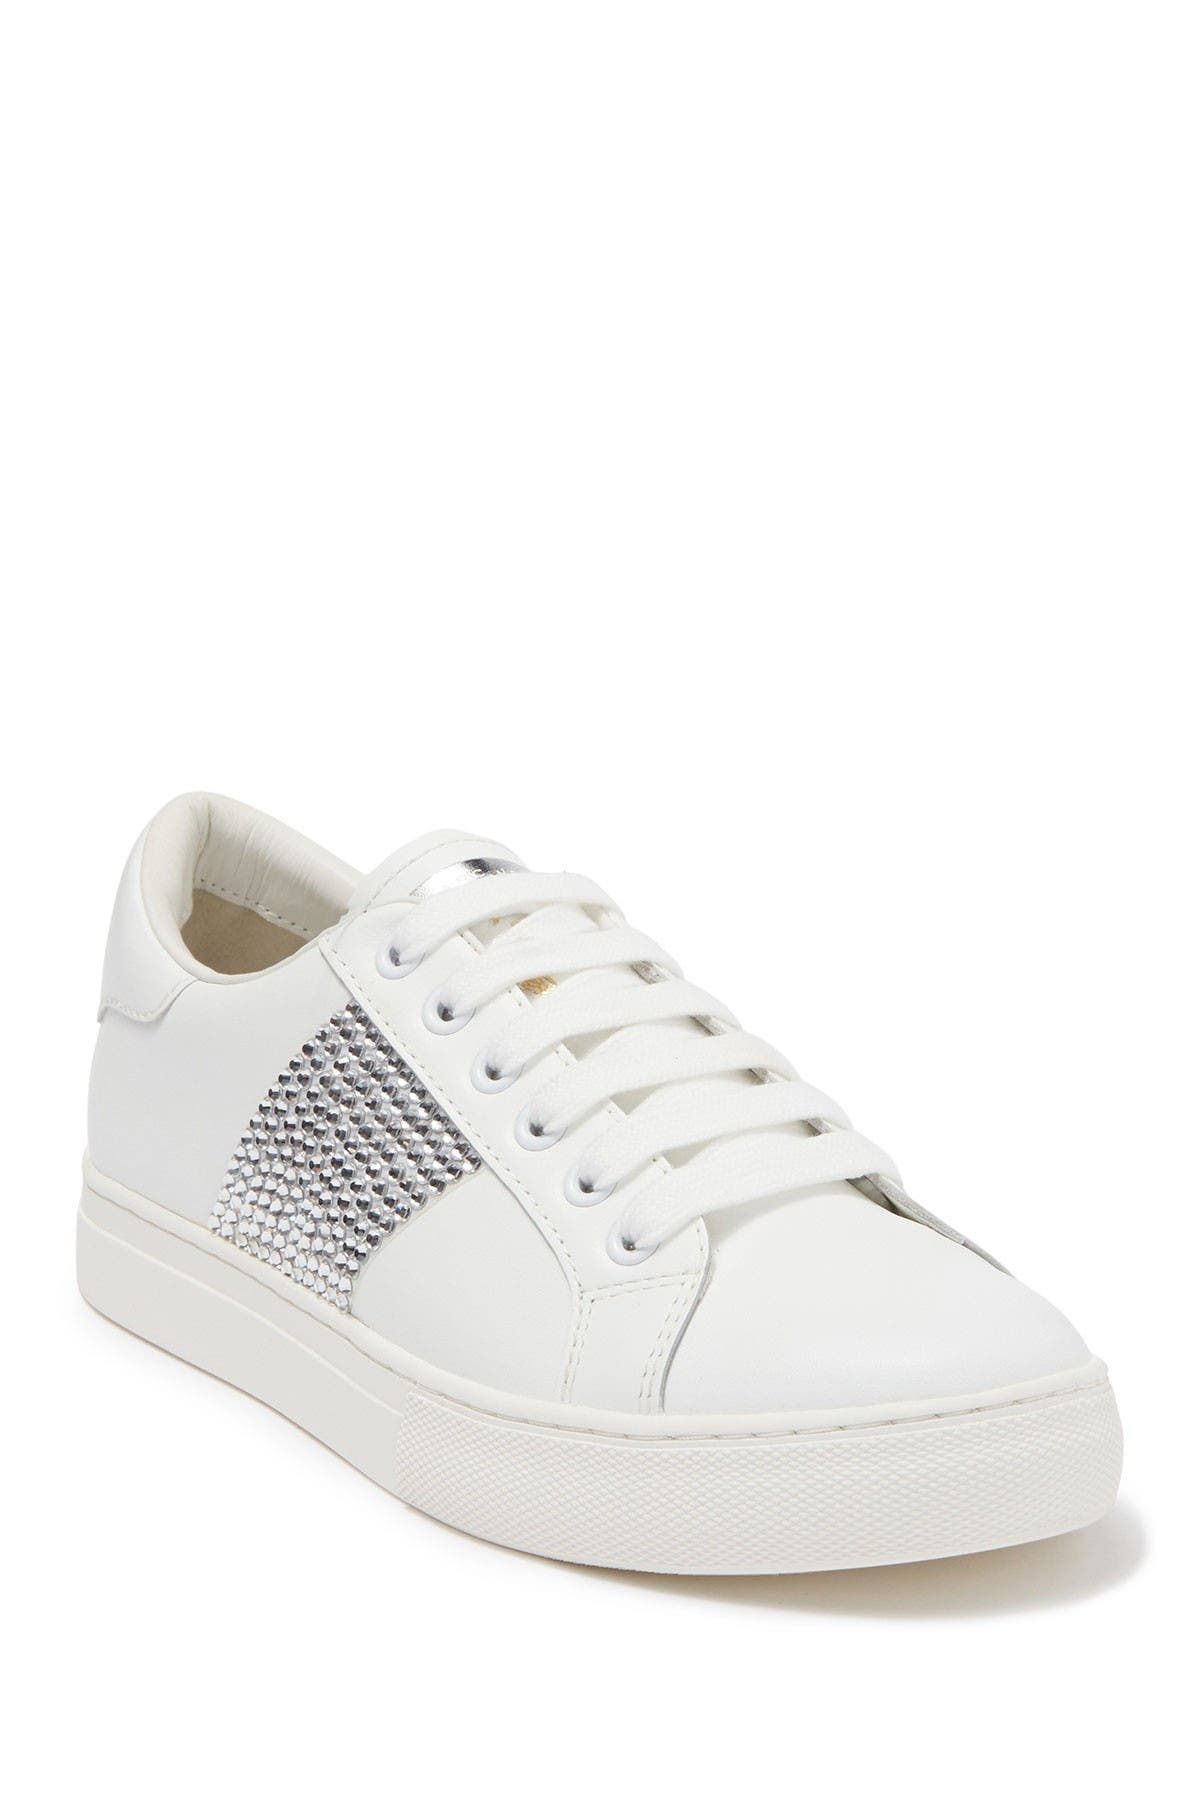 Image of Marc Jacobs Empire Studded Leather Sneaker